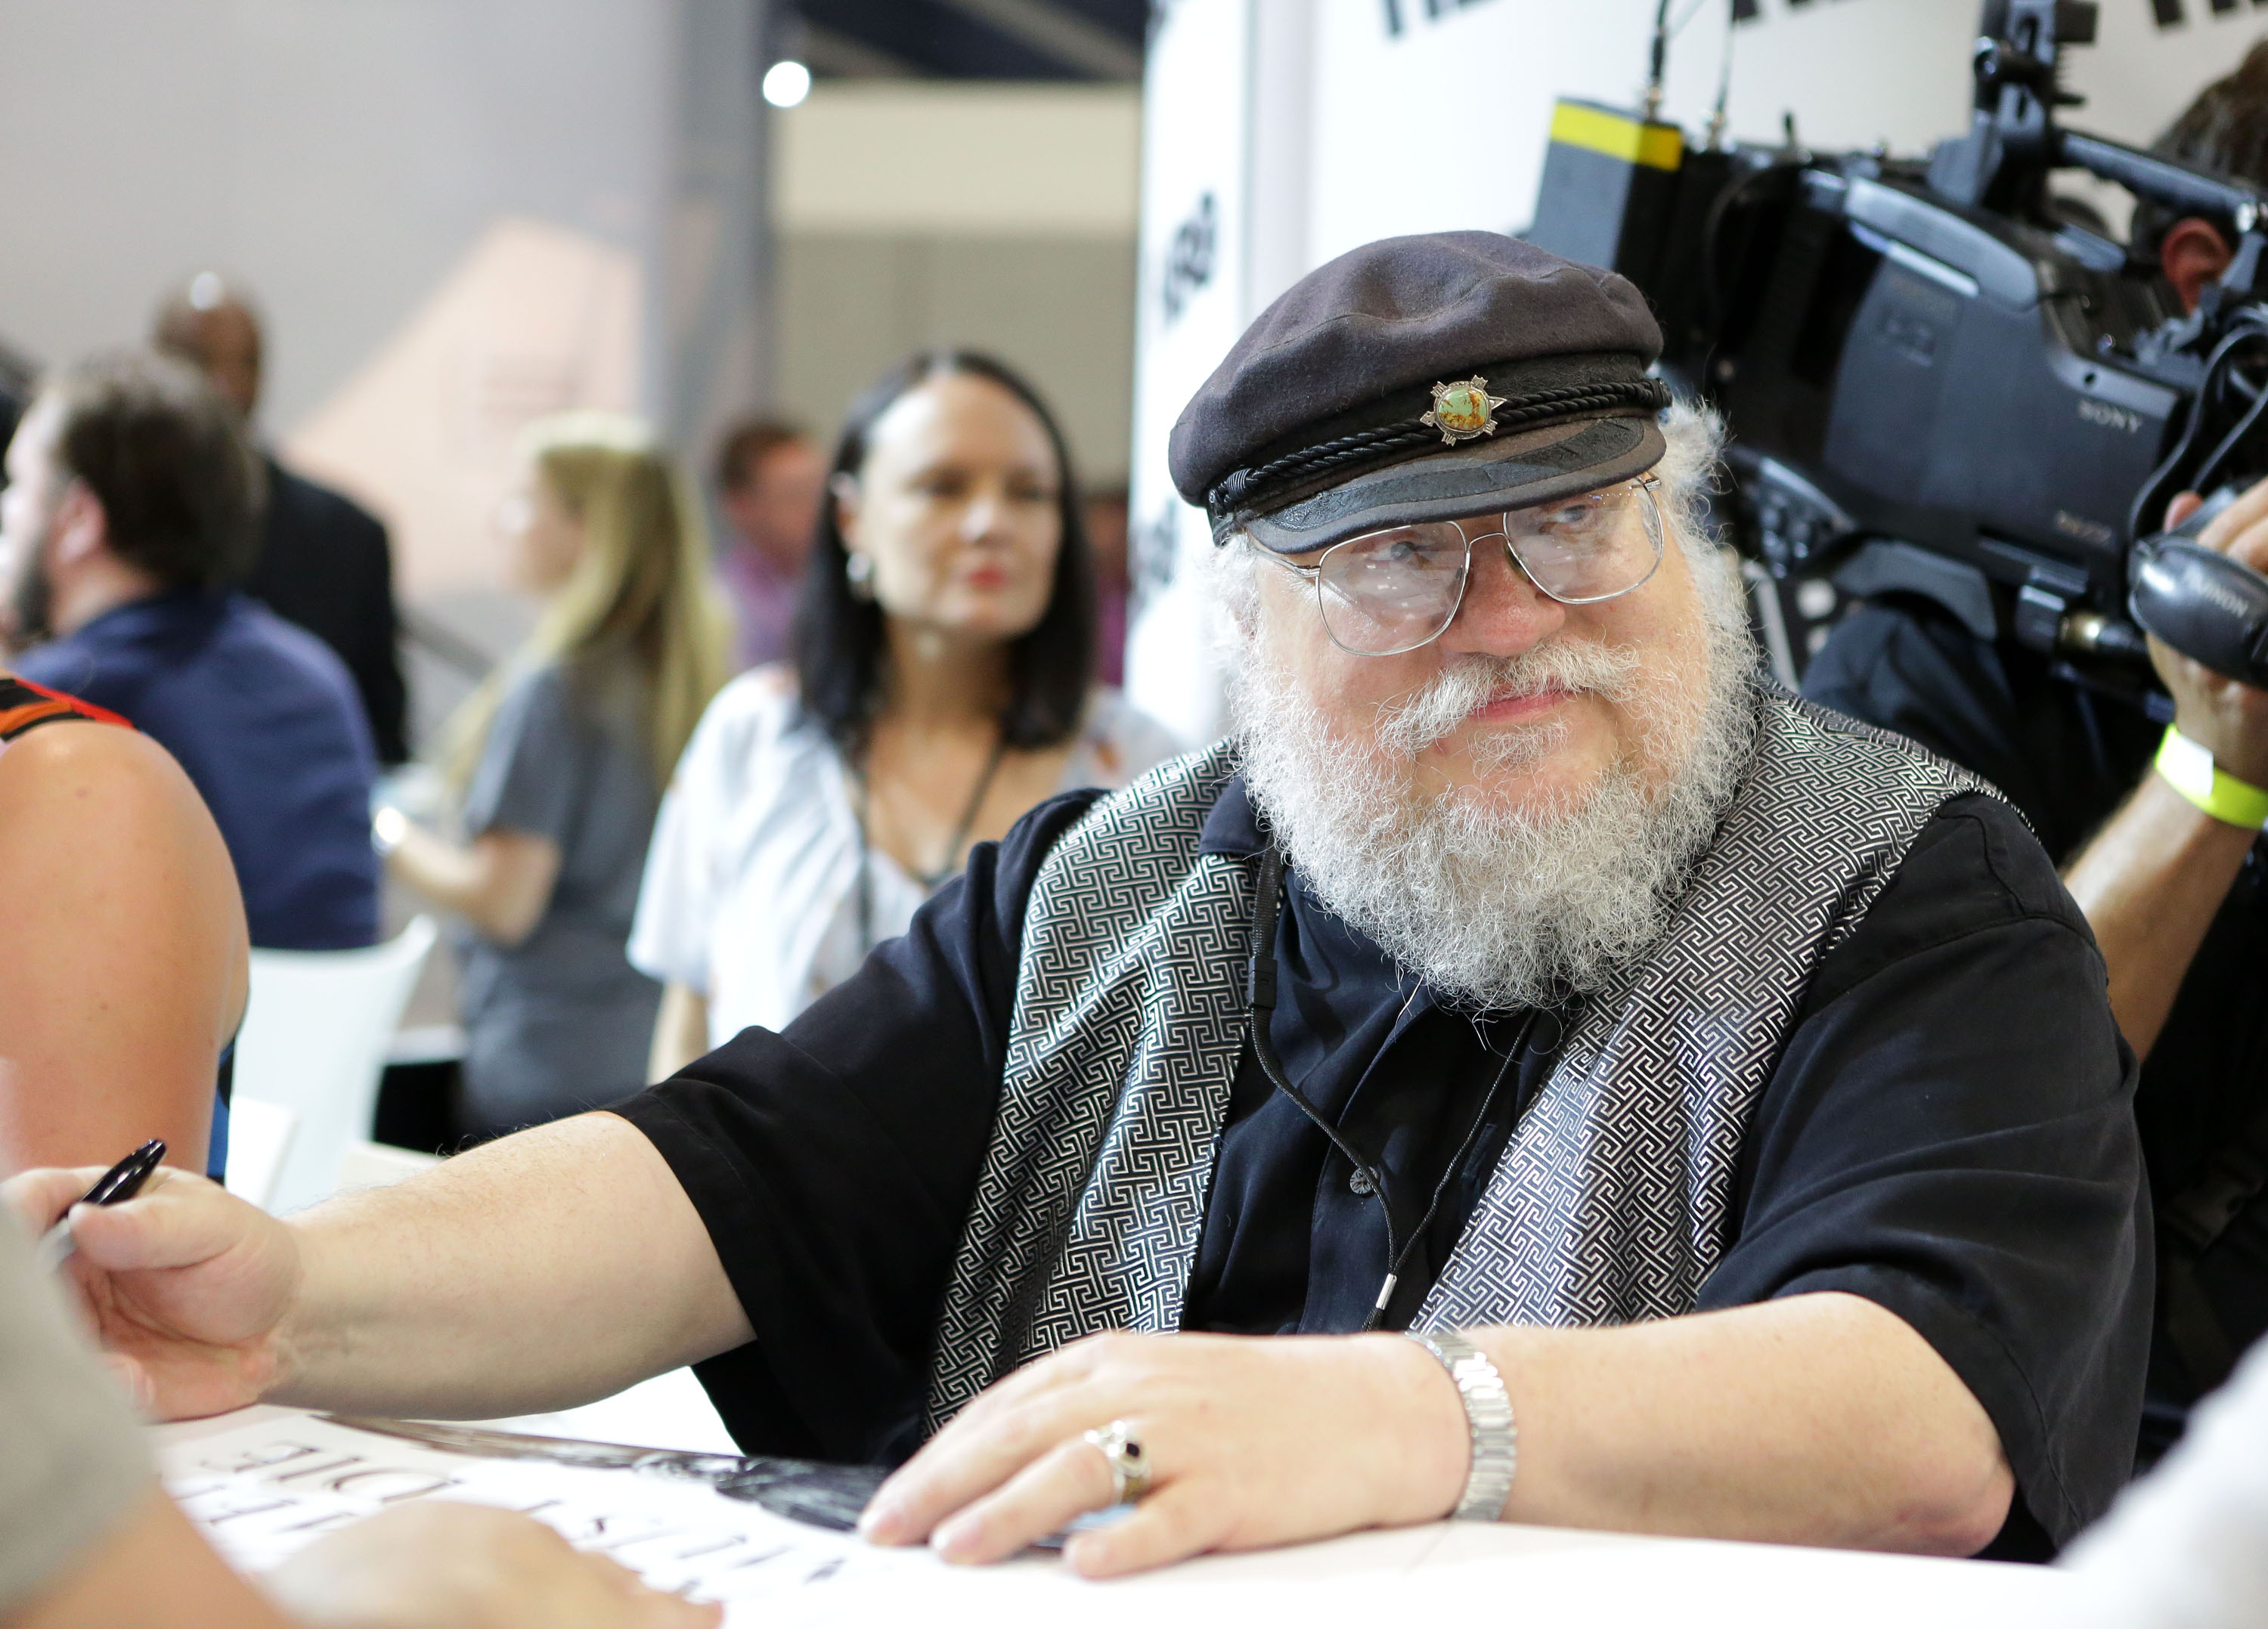 George R.R. Martin signs autographs during the 2014 Comic-Con International Convention.